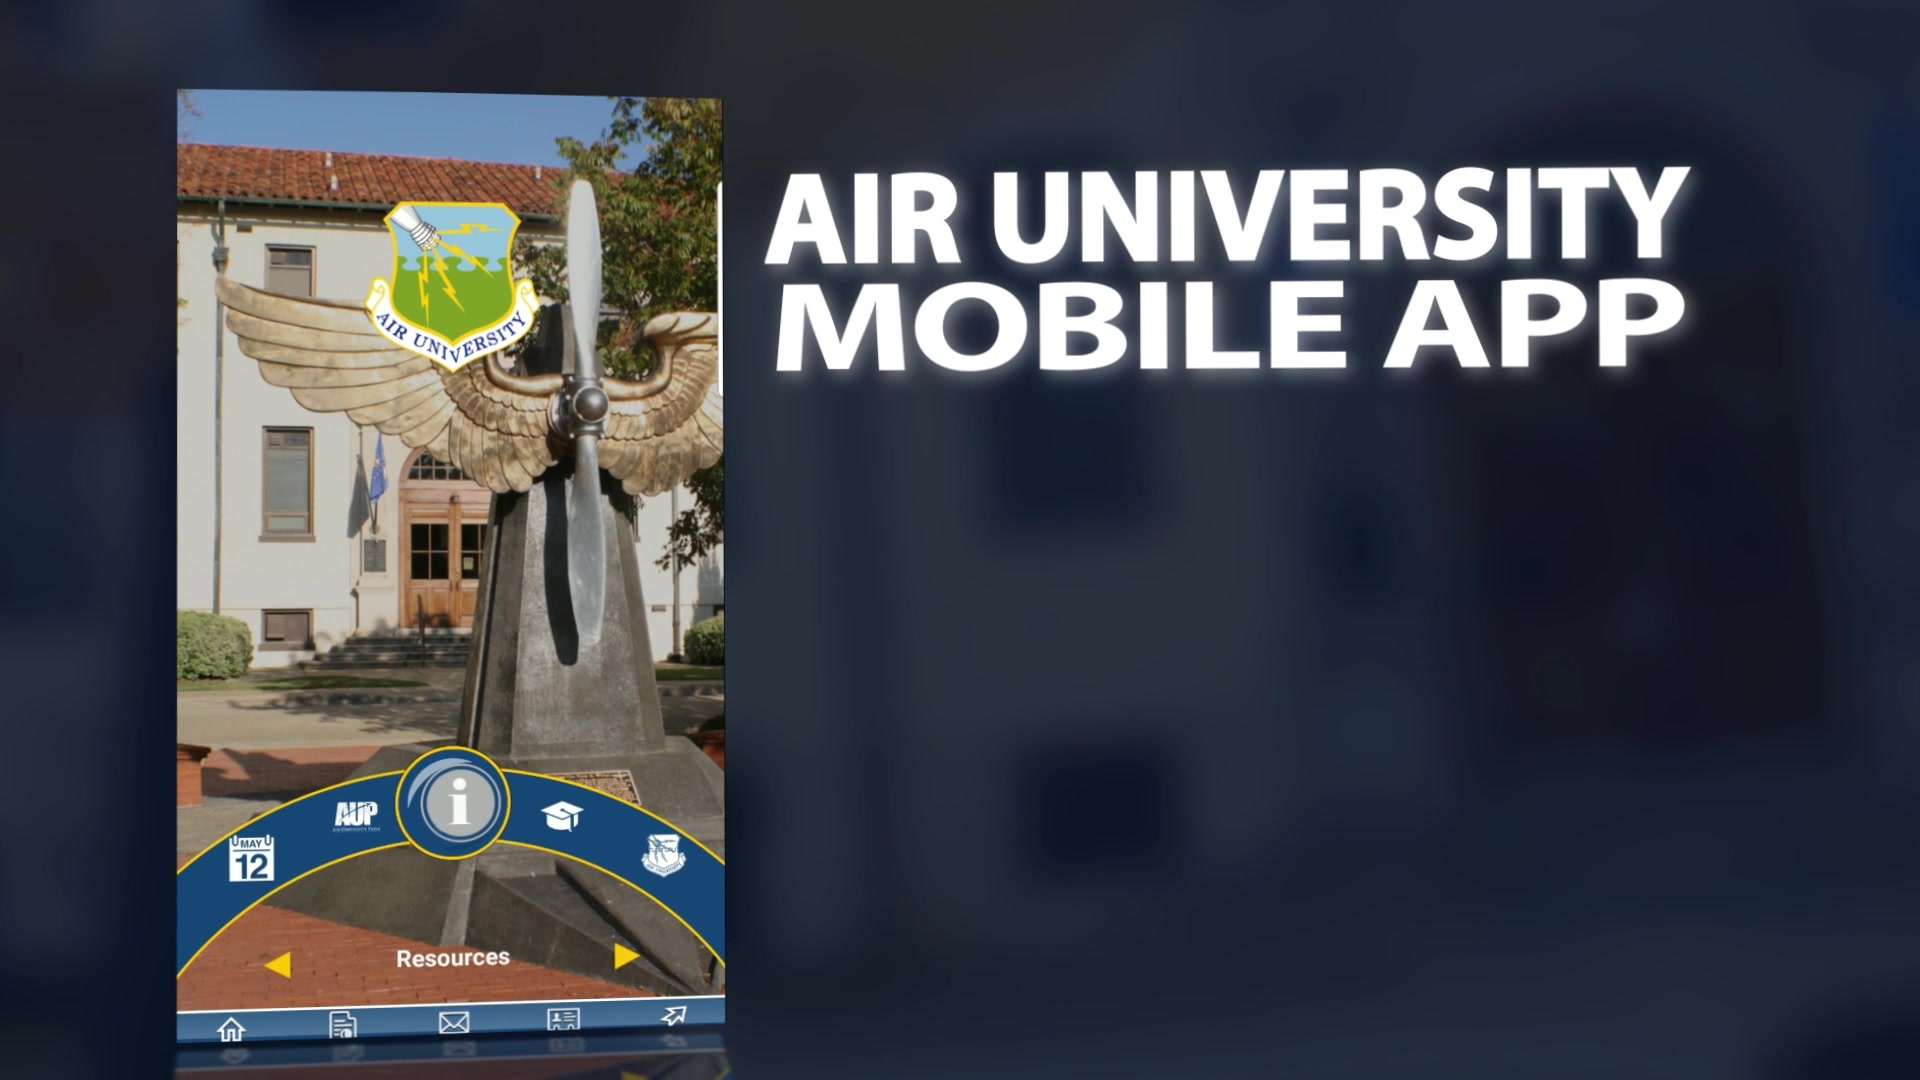 Air University Mobile Application Advertisement